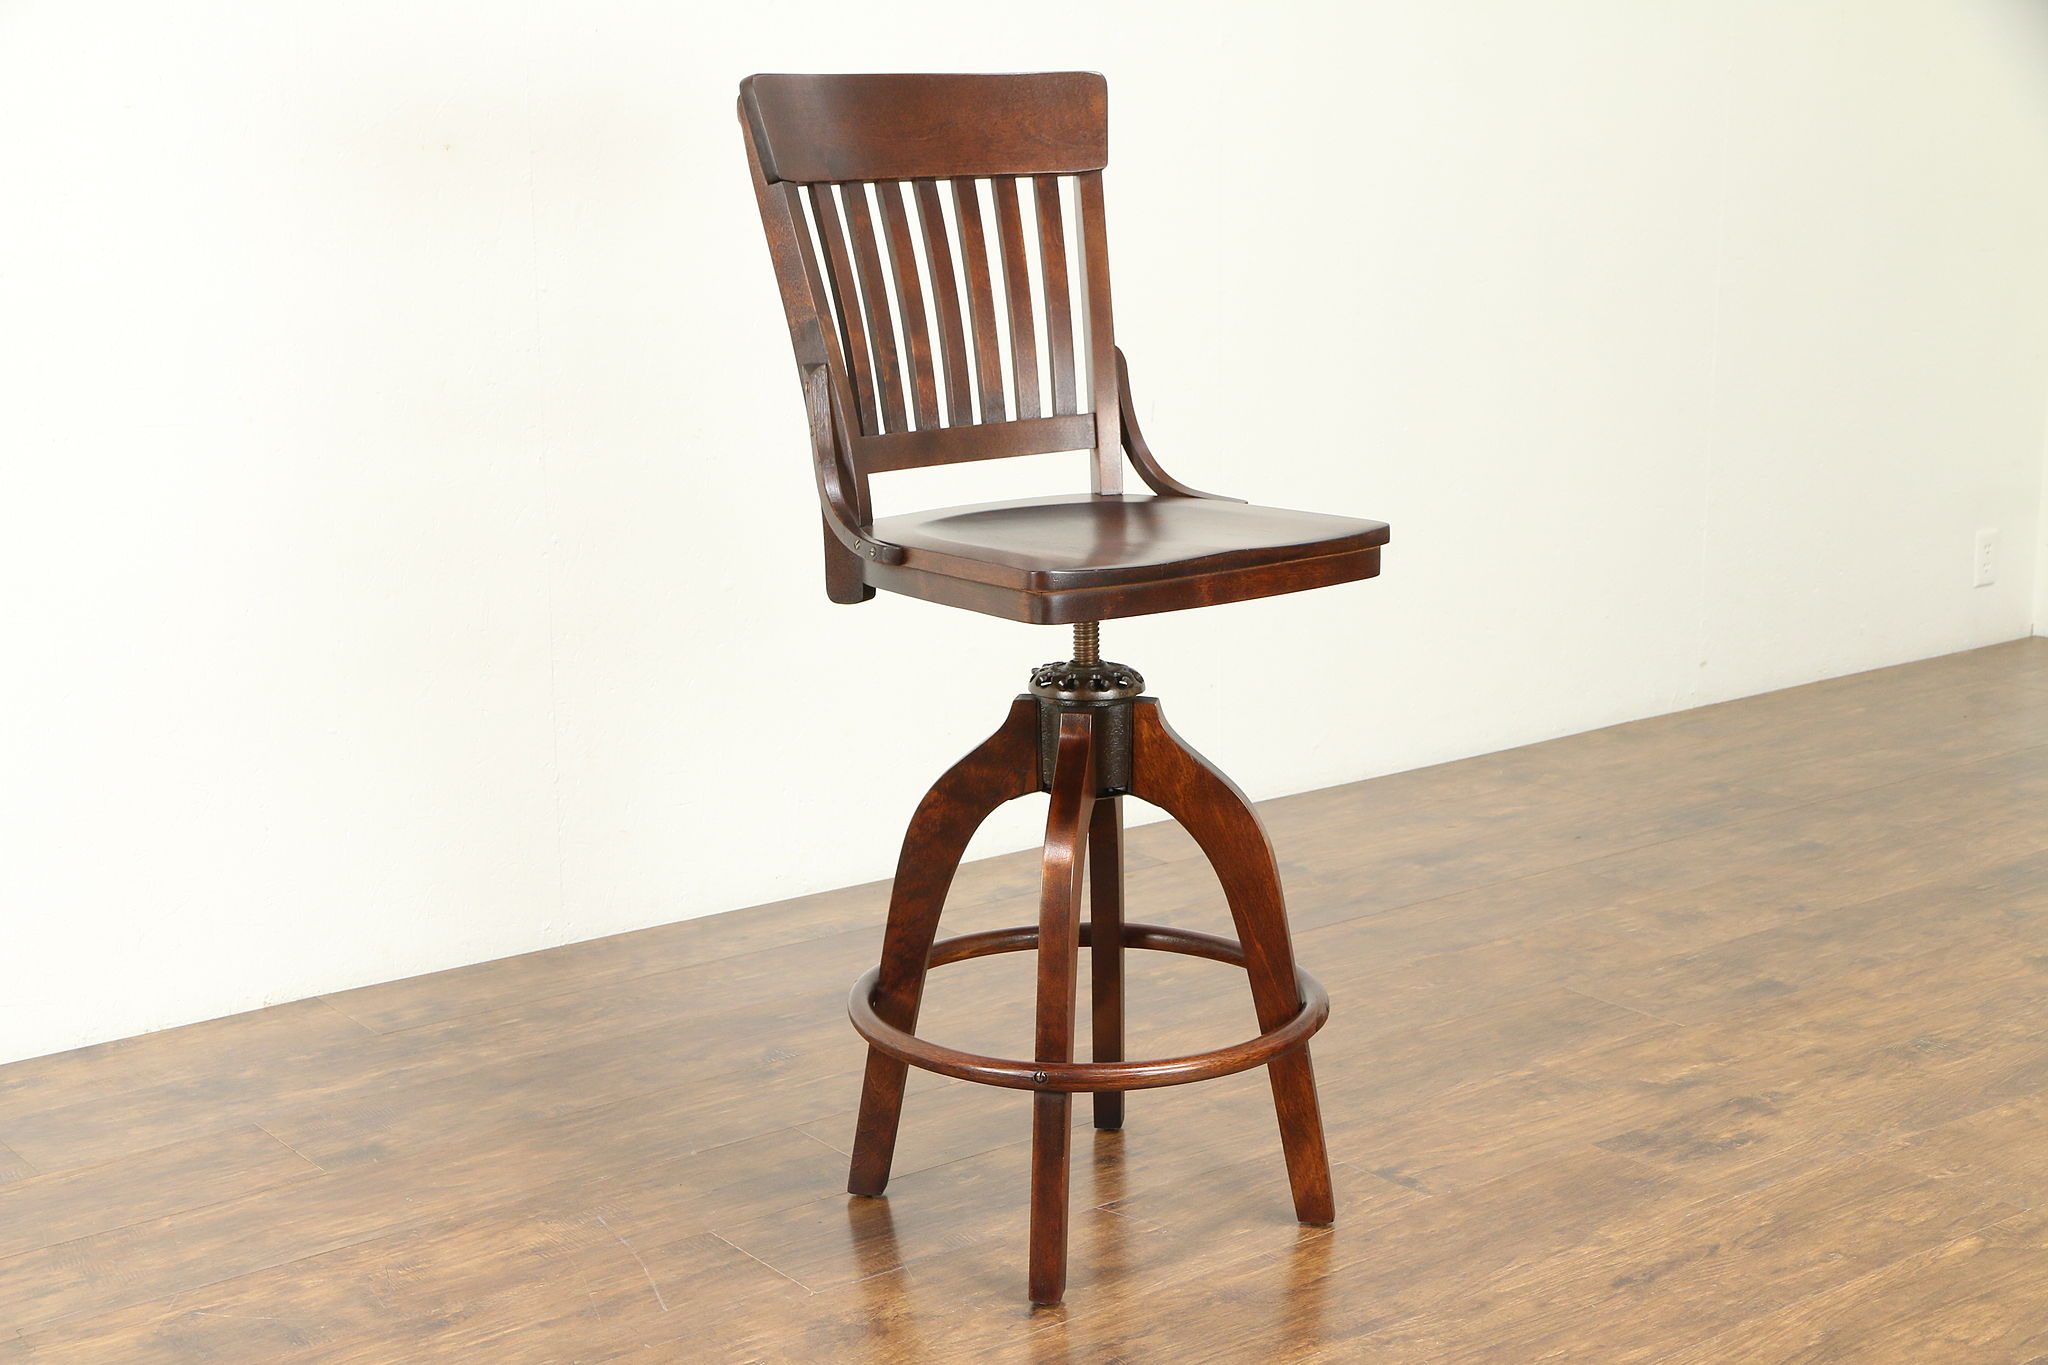 Excellent Milwaukee Antique Drafting Or Architect Swivel Adjustable Stool Pat 1914 30924 Caraccident5 Cool Chair Designs And Ideas Caraccident5Info